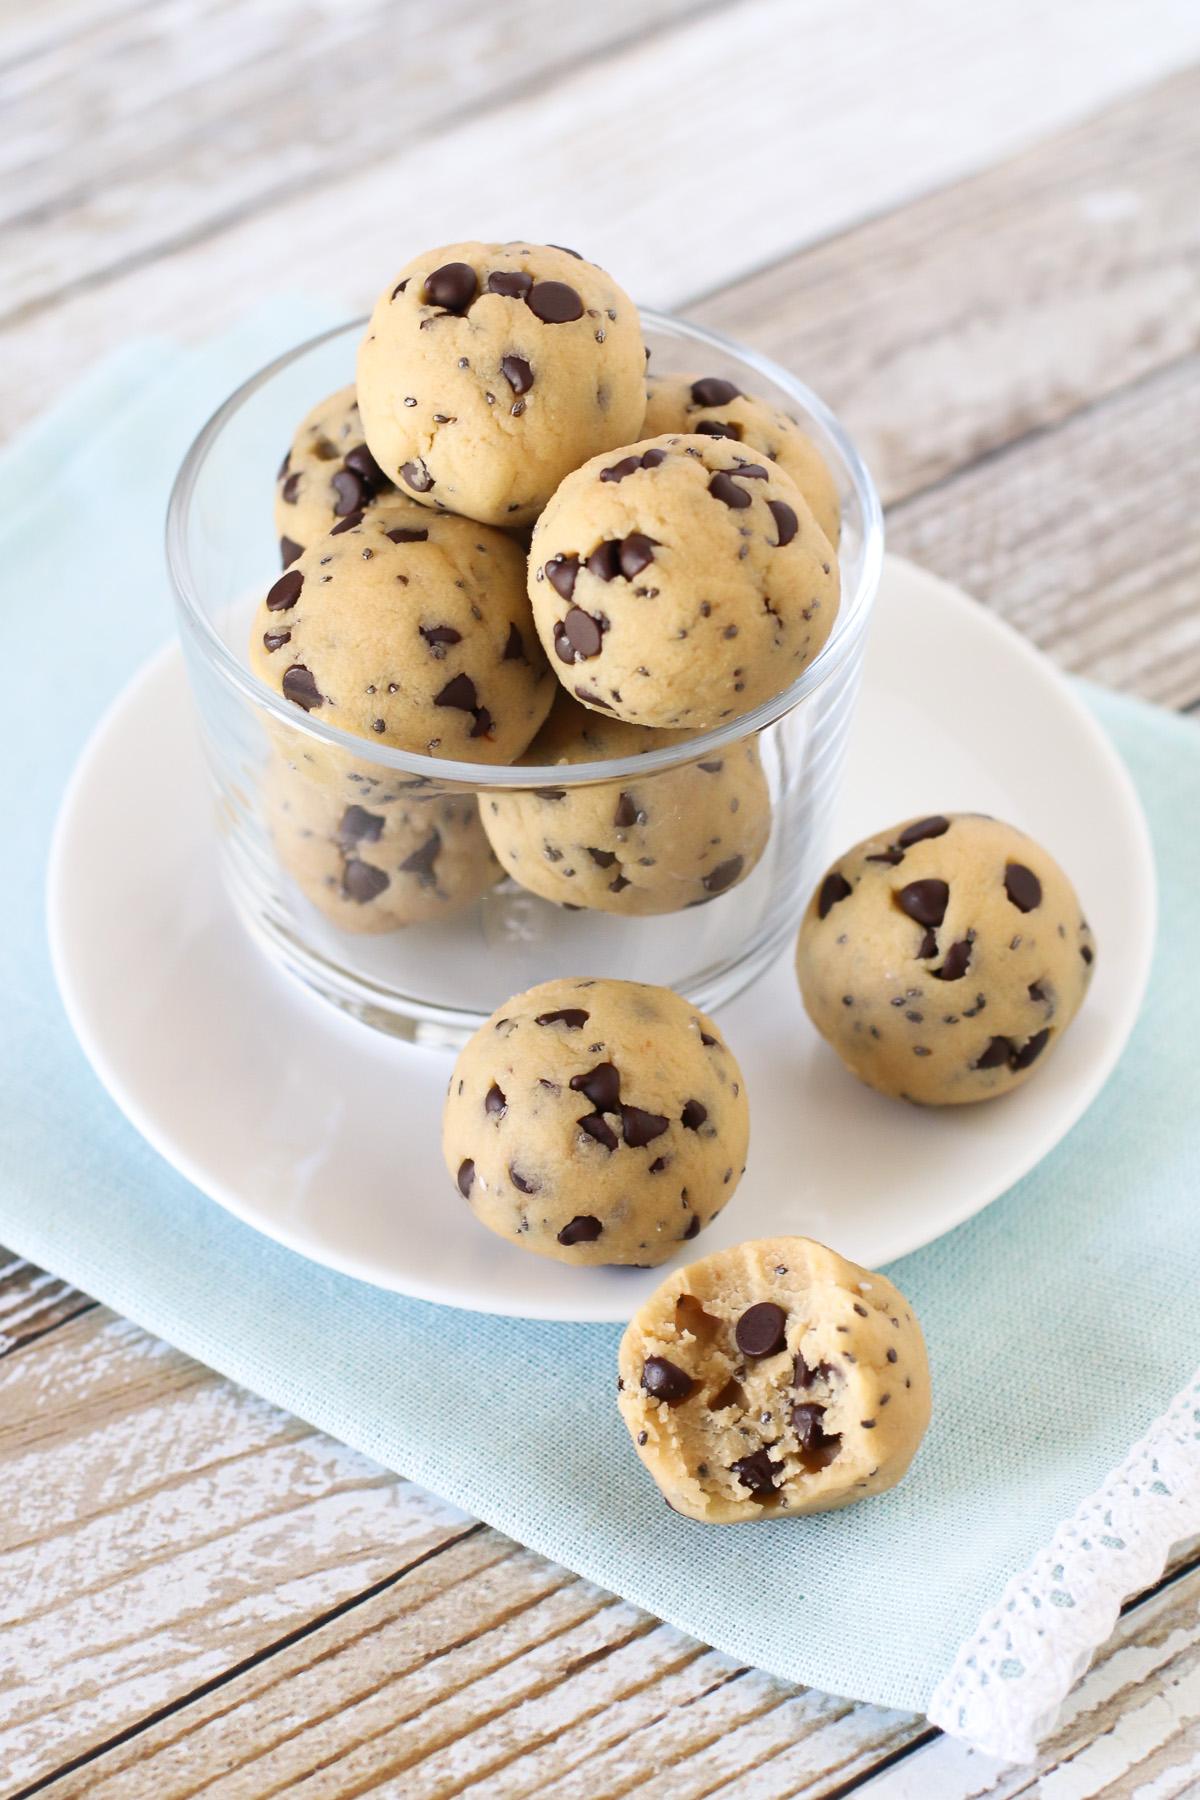 Chocolate Chip Cookie Dough Protein Bites. These no-bake protein bites tastes just like cookie dough, loaded with mini chocolate chips.